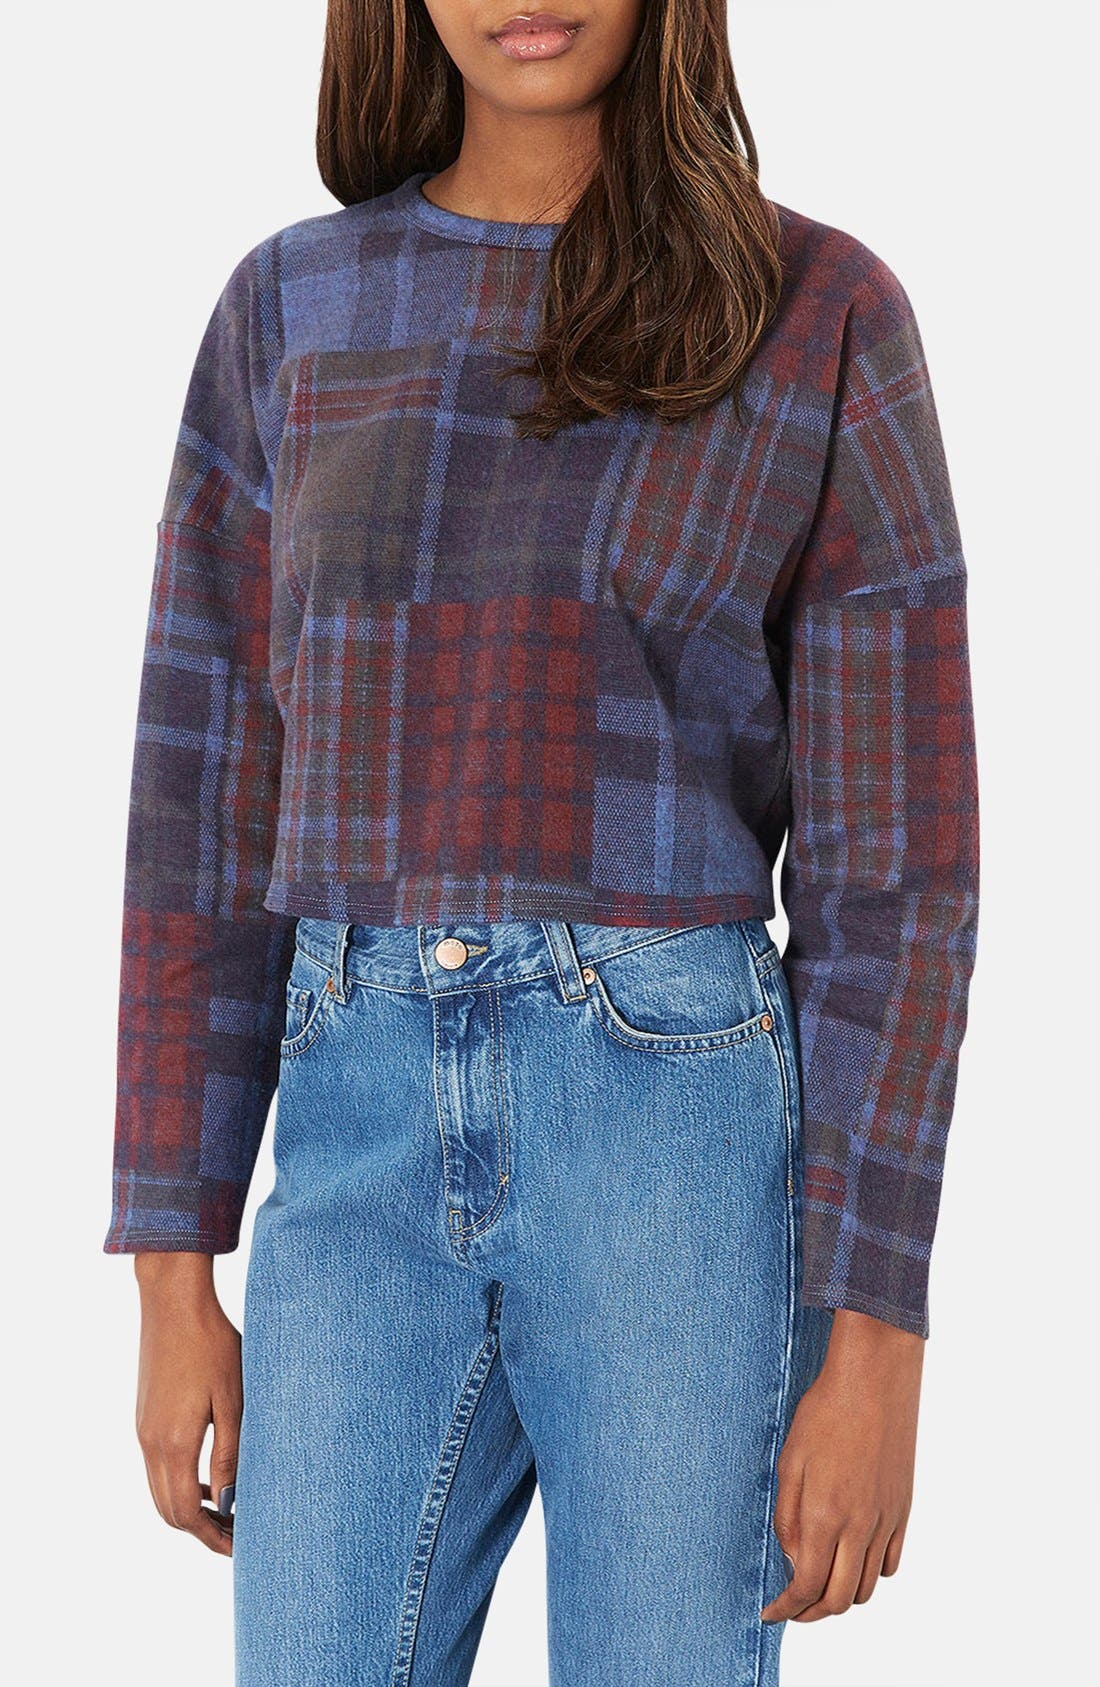 Alternate Image 1 Selected - Topshop Mixed Plaid Crop Sweater (Petite)